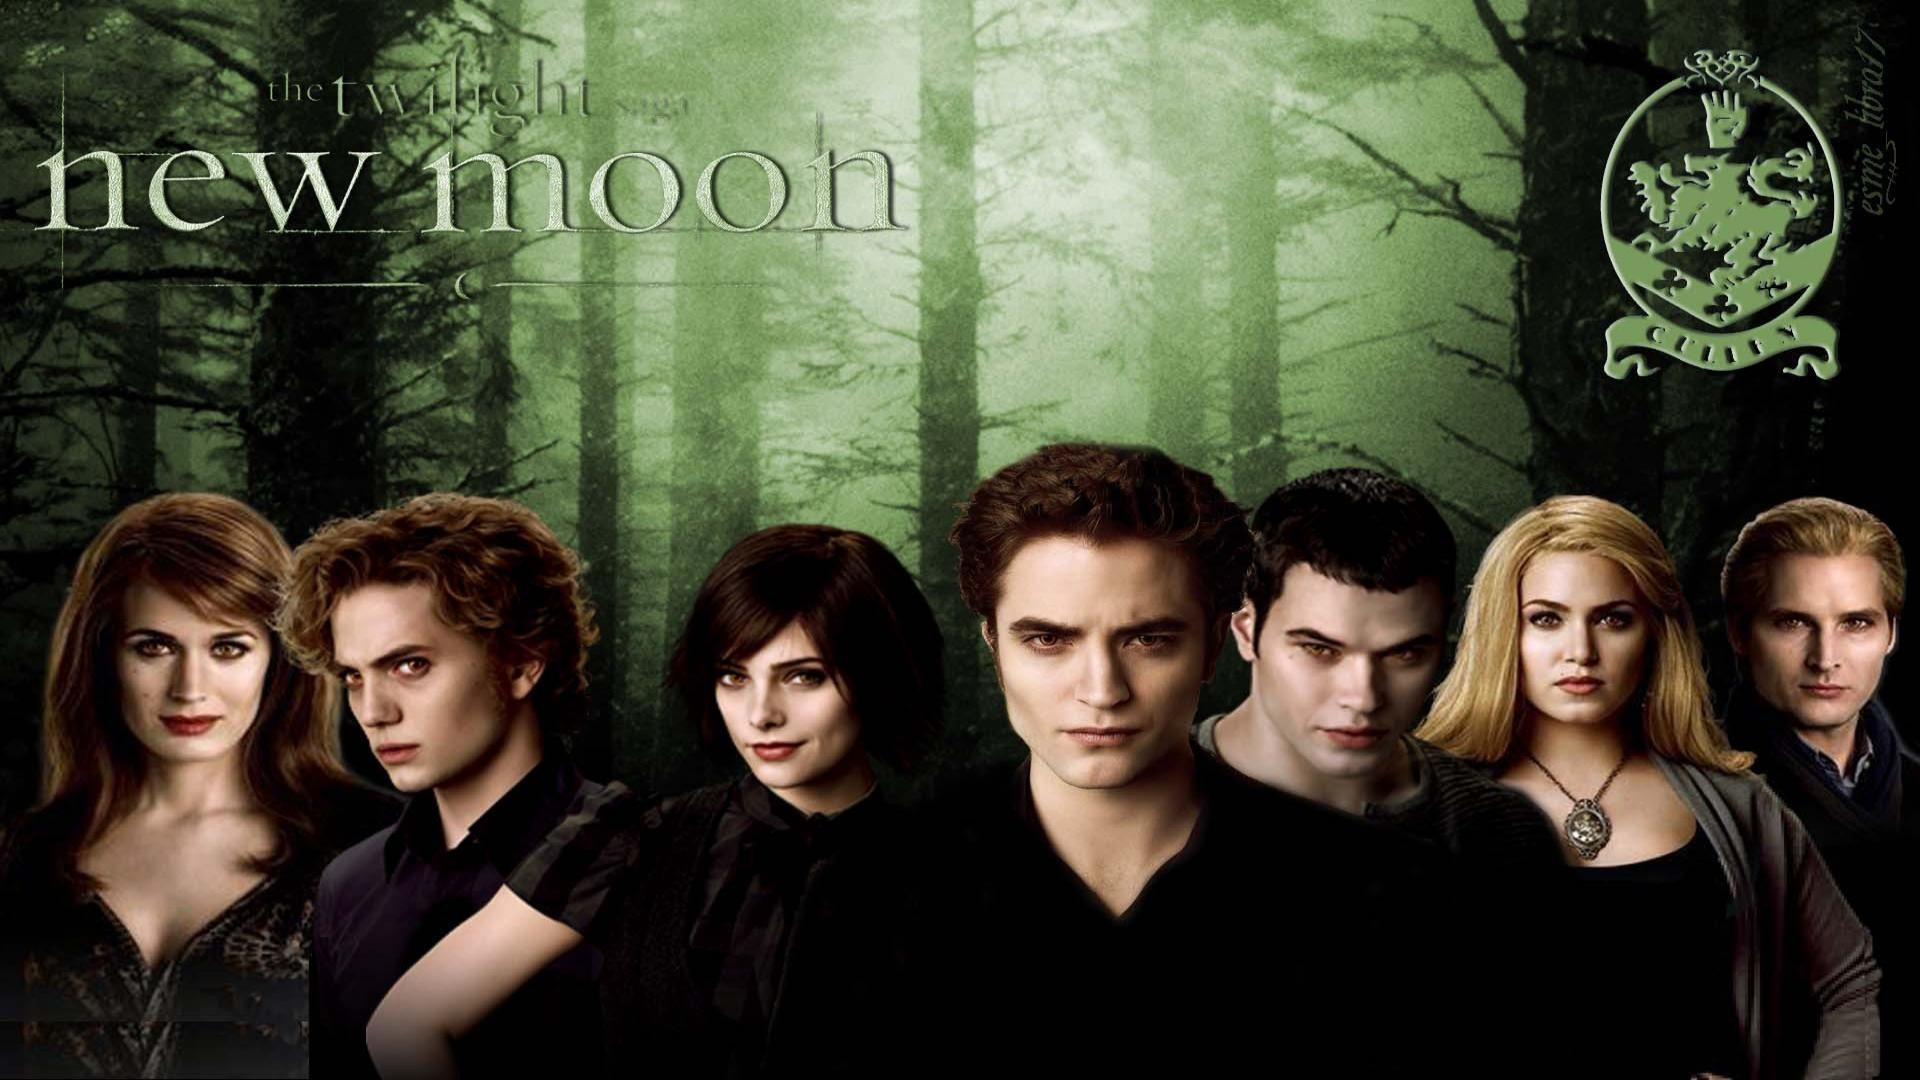 twilight new moon free full movie download